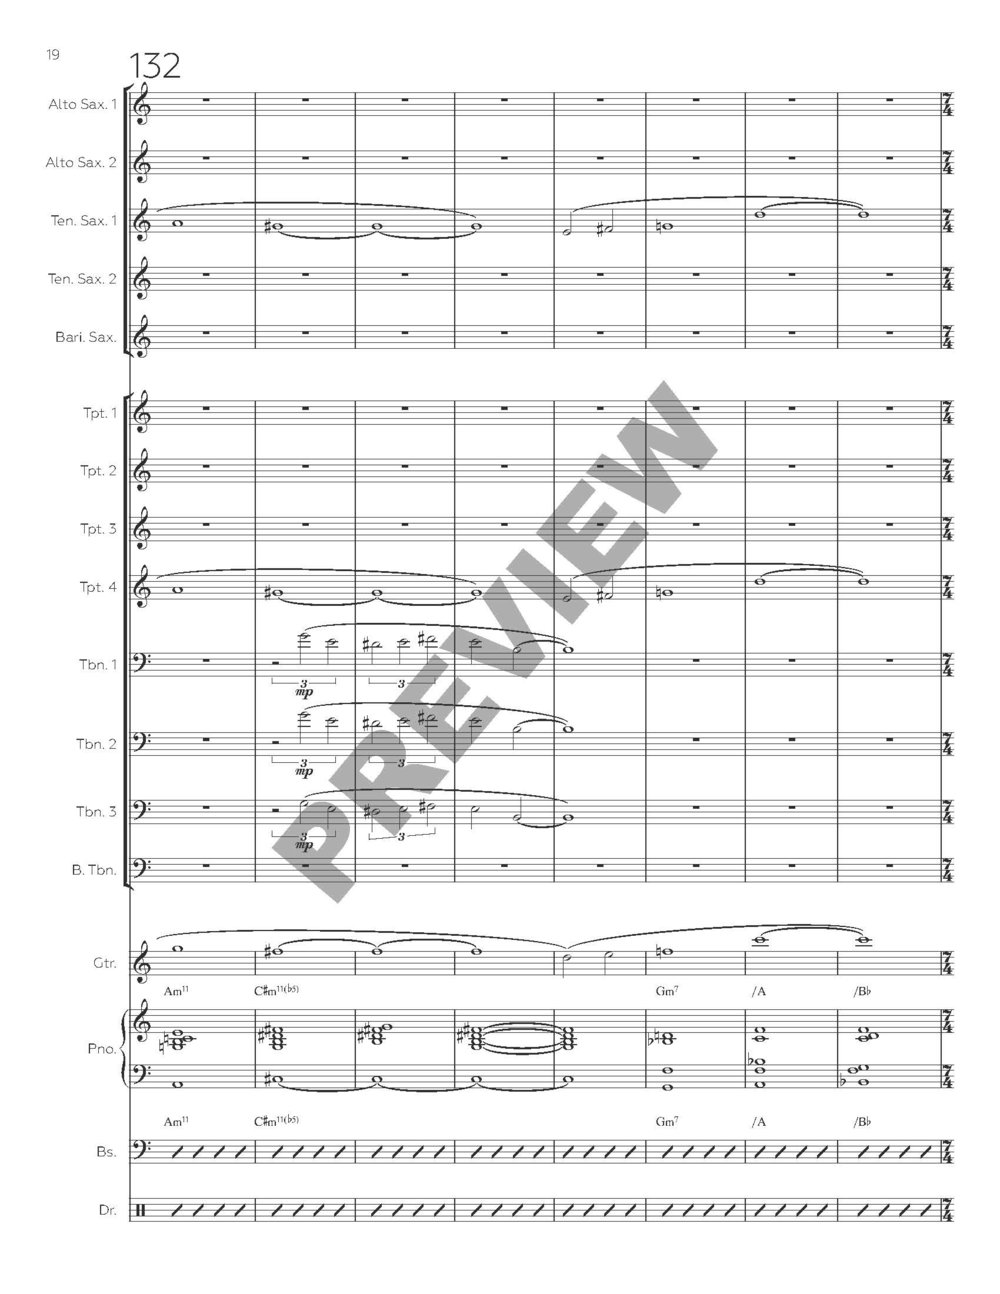 Something Fast - Full Score_Page_21.jpg